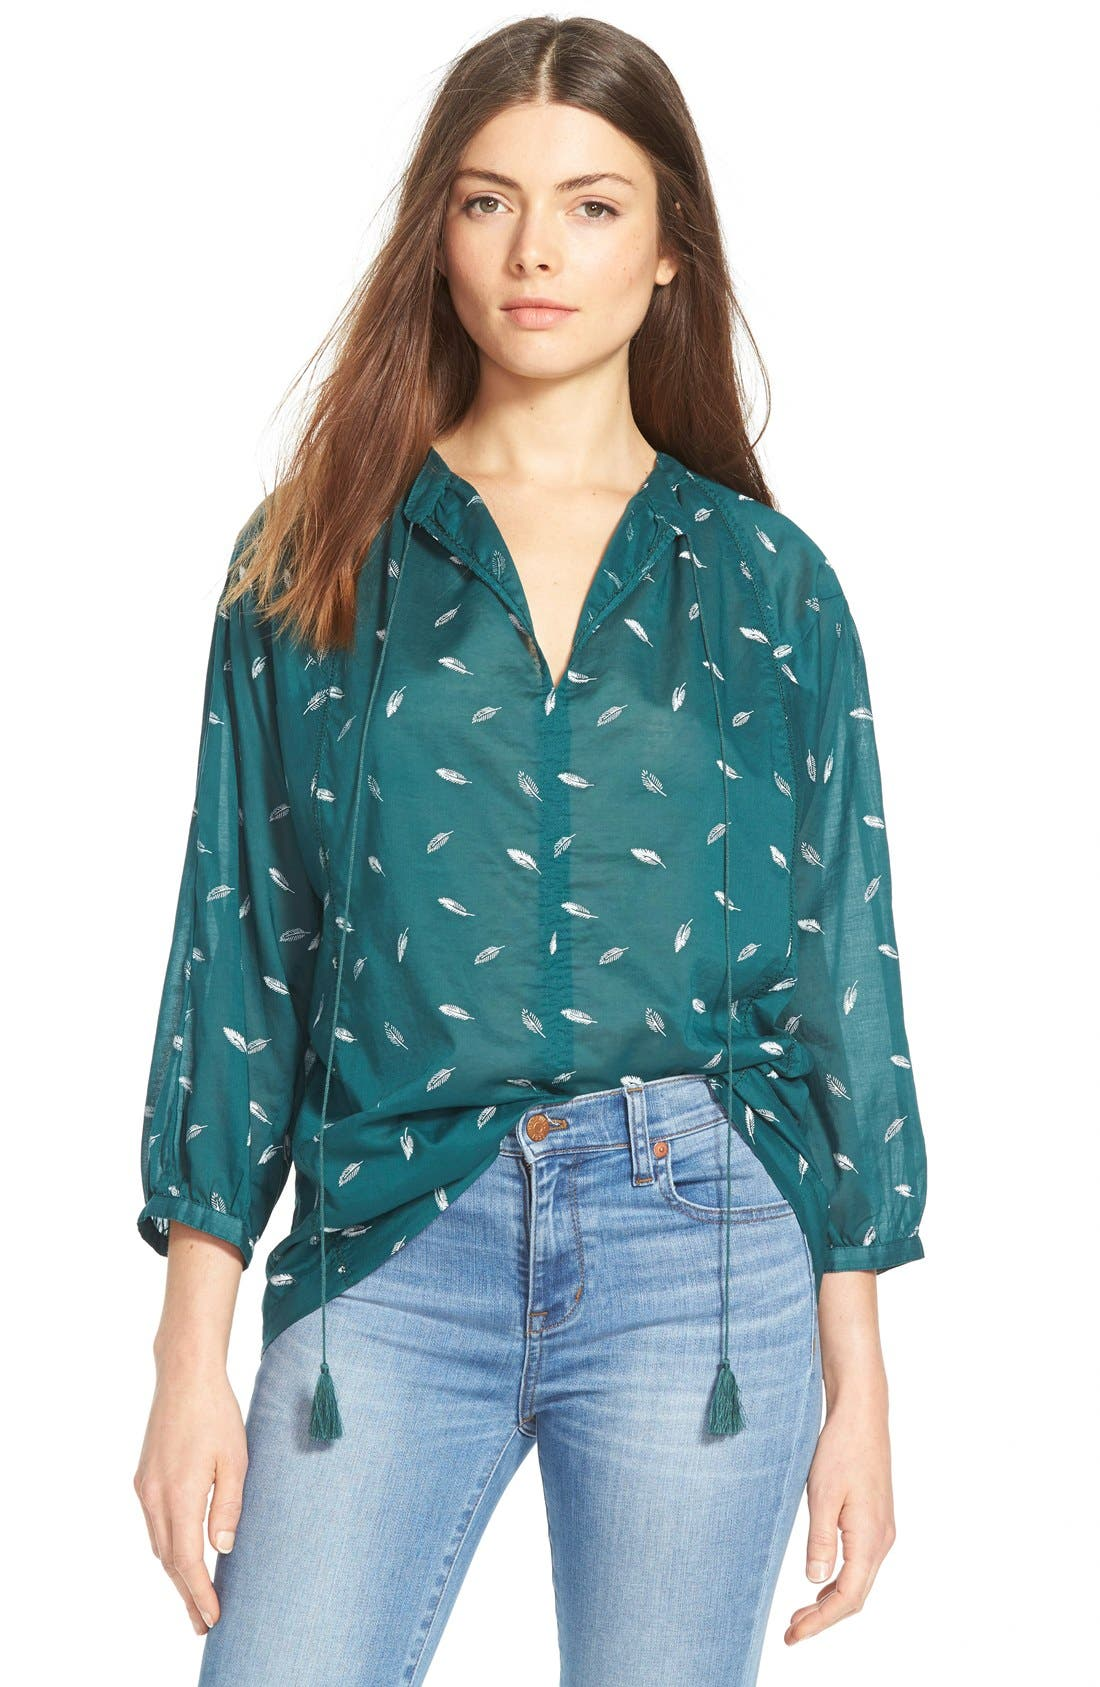 Main Image - Madewell 'Fall Feathers' Tie Neck Peasant Blouse